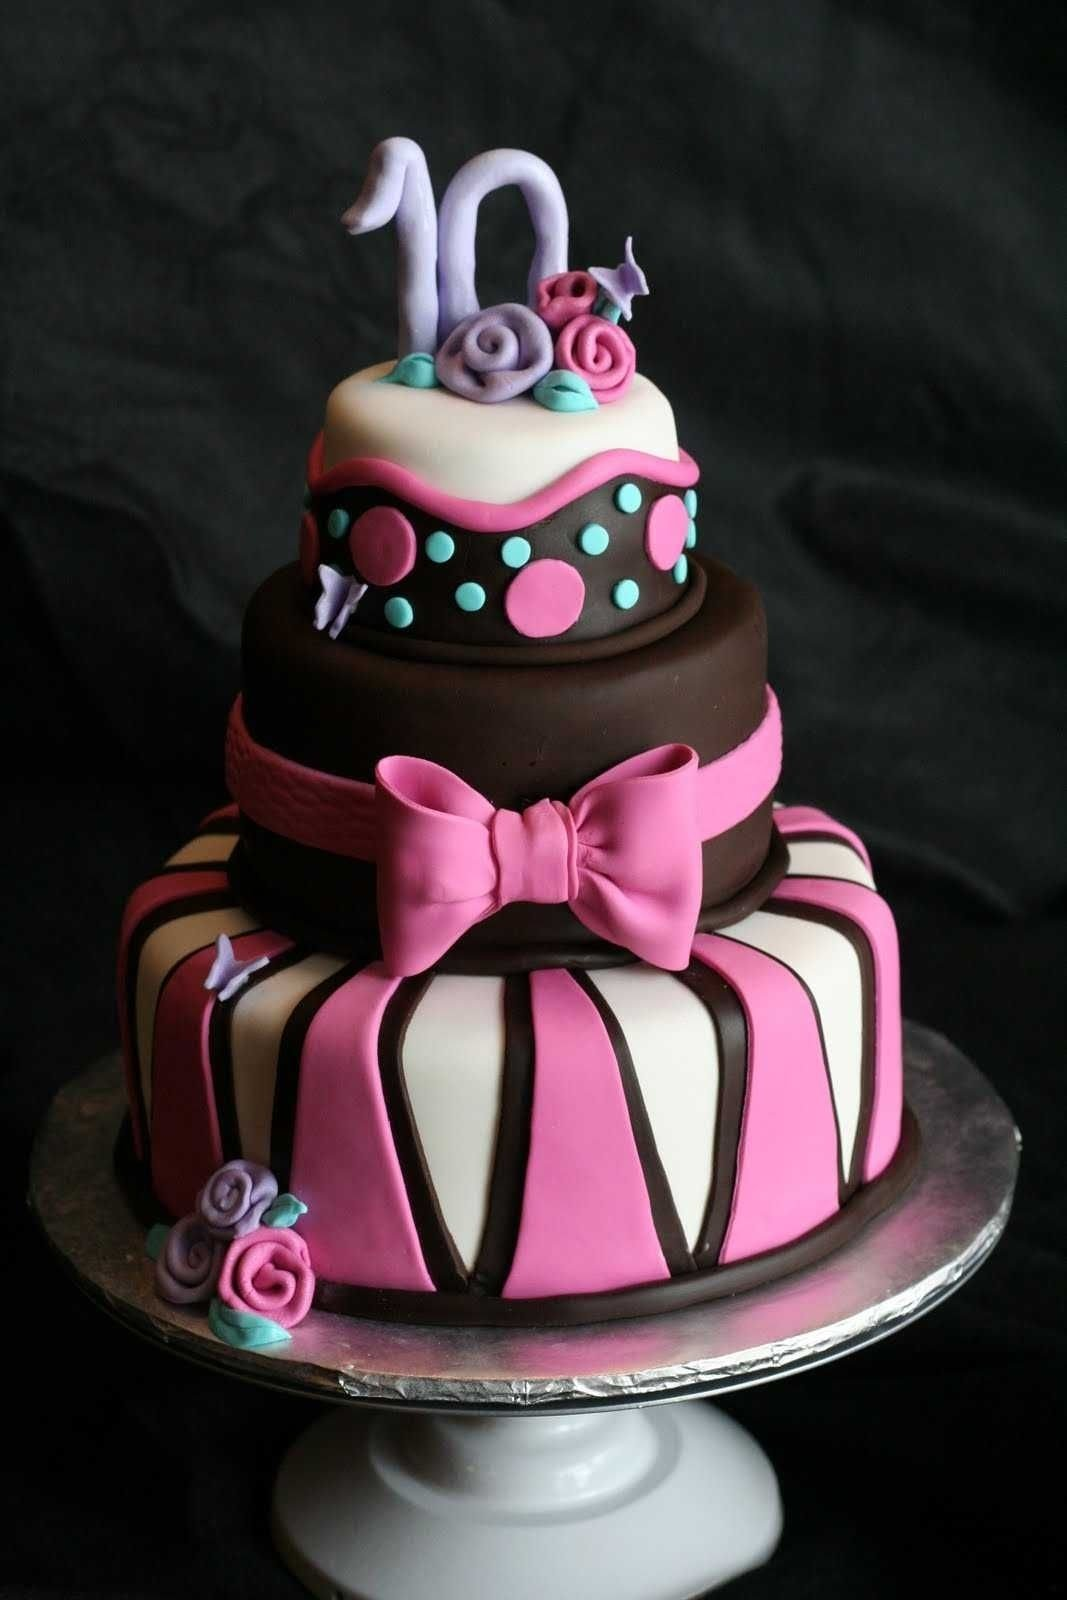 10 Gorgeous Birthday Ideas For 10 Yr Old Girl cool 10 year old boy birthday party ideas delicious pinterest